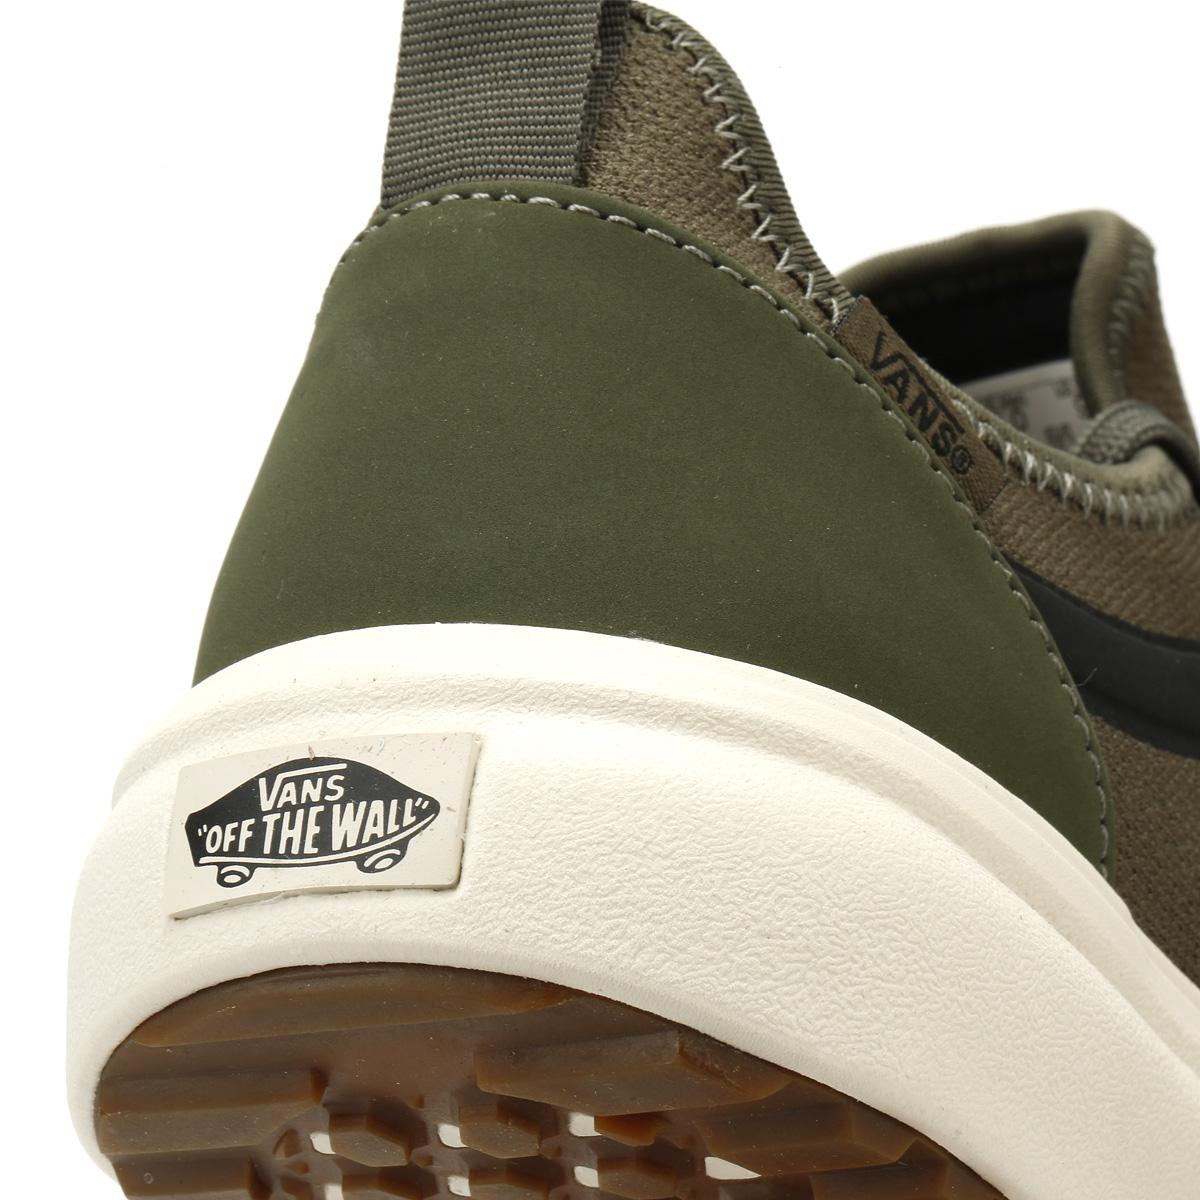 Lyst - Vans Mens Leaf Green Knit Ultrarange Ac Trainers in Green for Men e252618f8